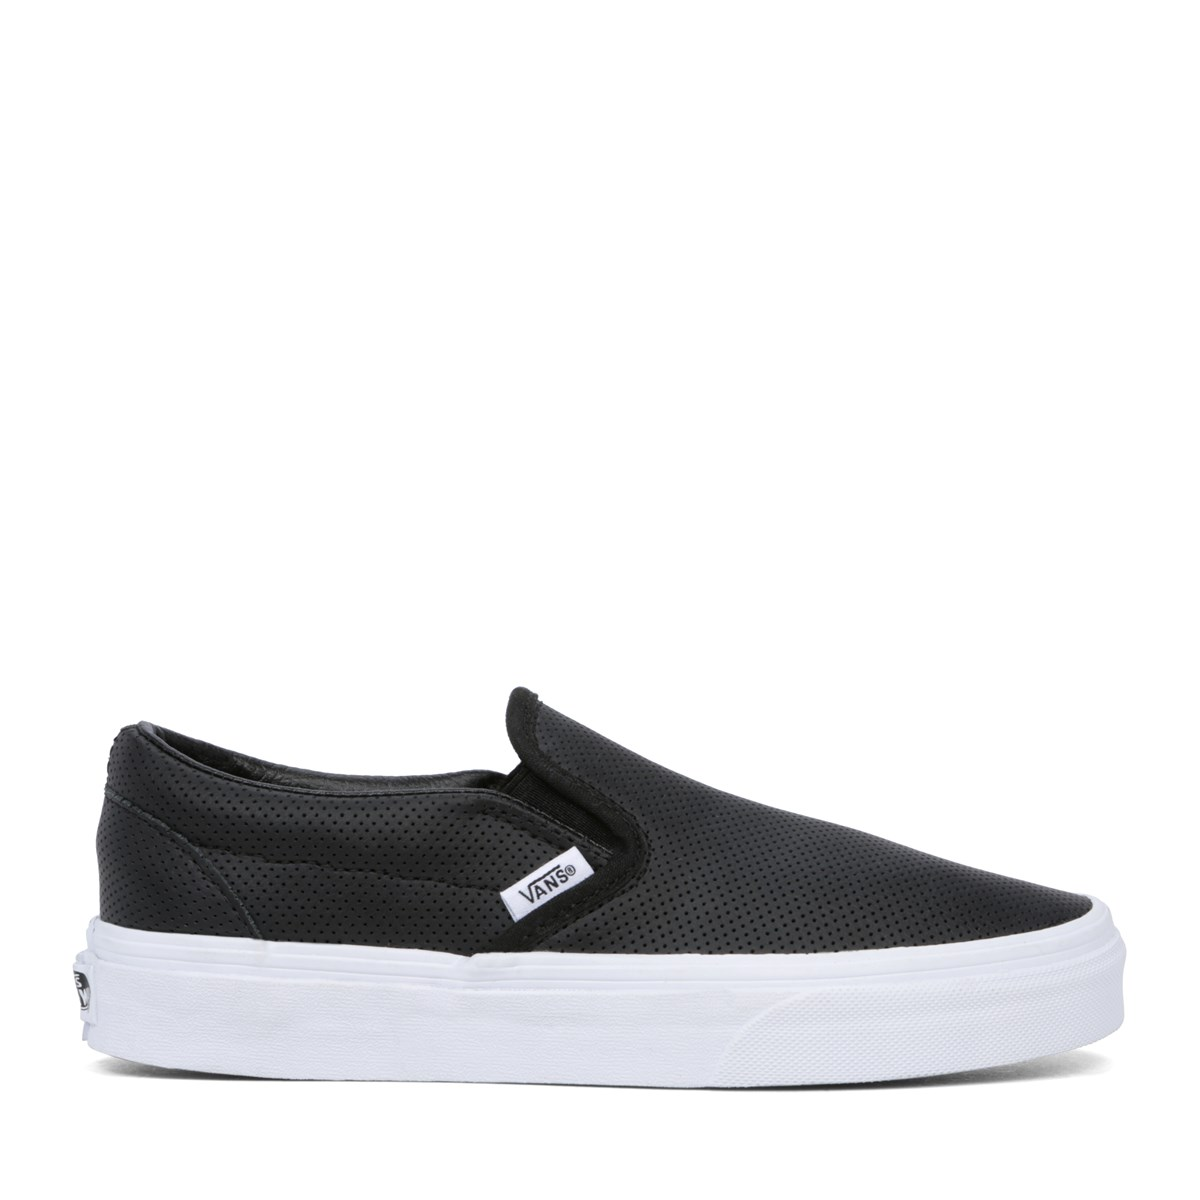 e7ef160d78 Women s Classic Perforated Leather Slip-On. Previous. default view ...